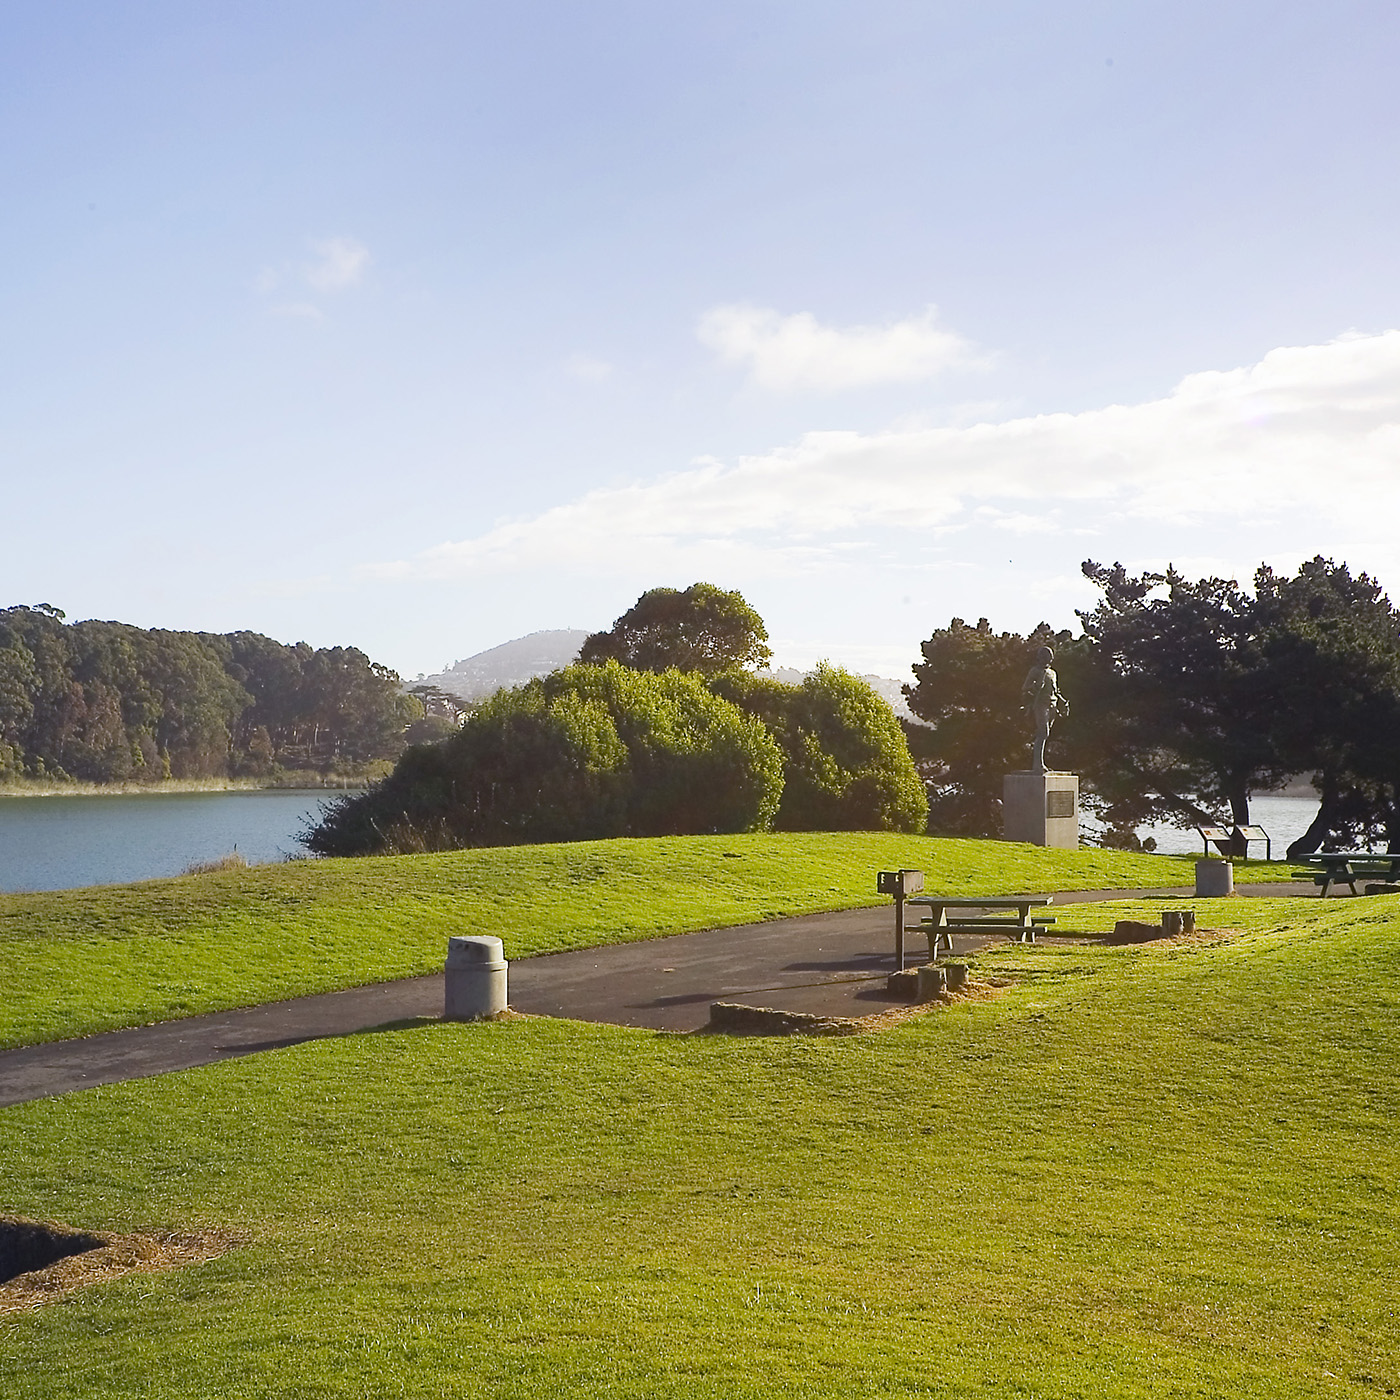 Pine Lake Park Real Estate, Homes & Houses for Sale, San Francisco CA | PARAGON Real Estate Group